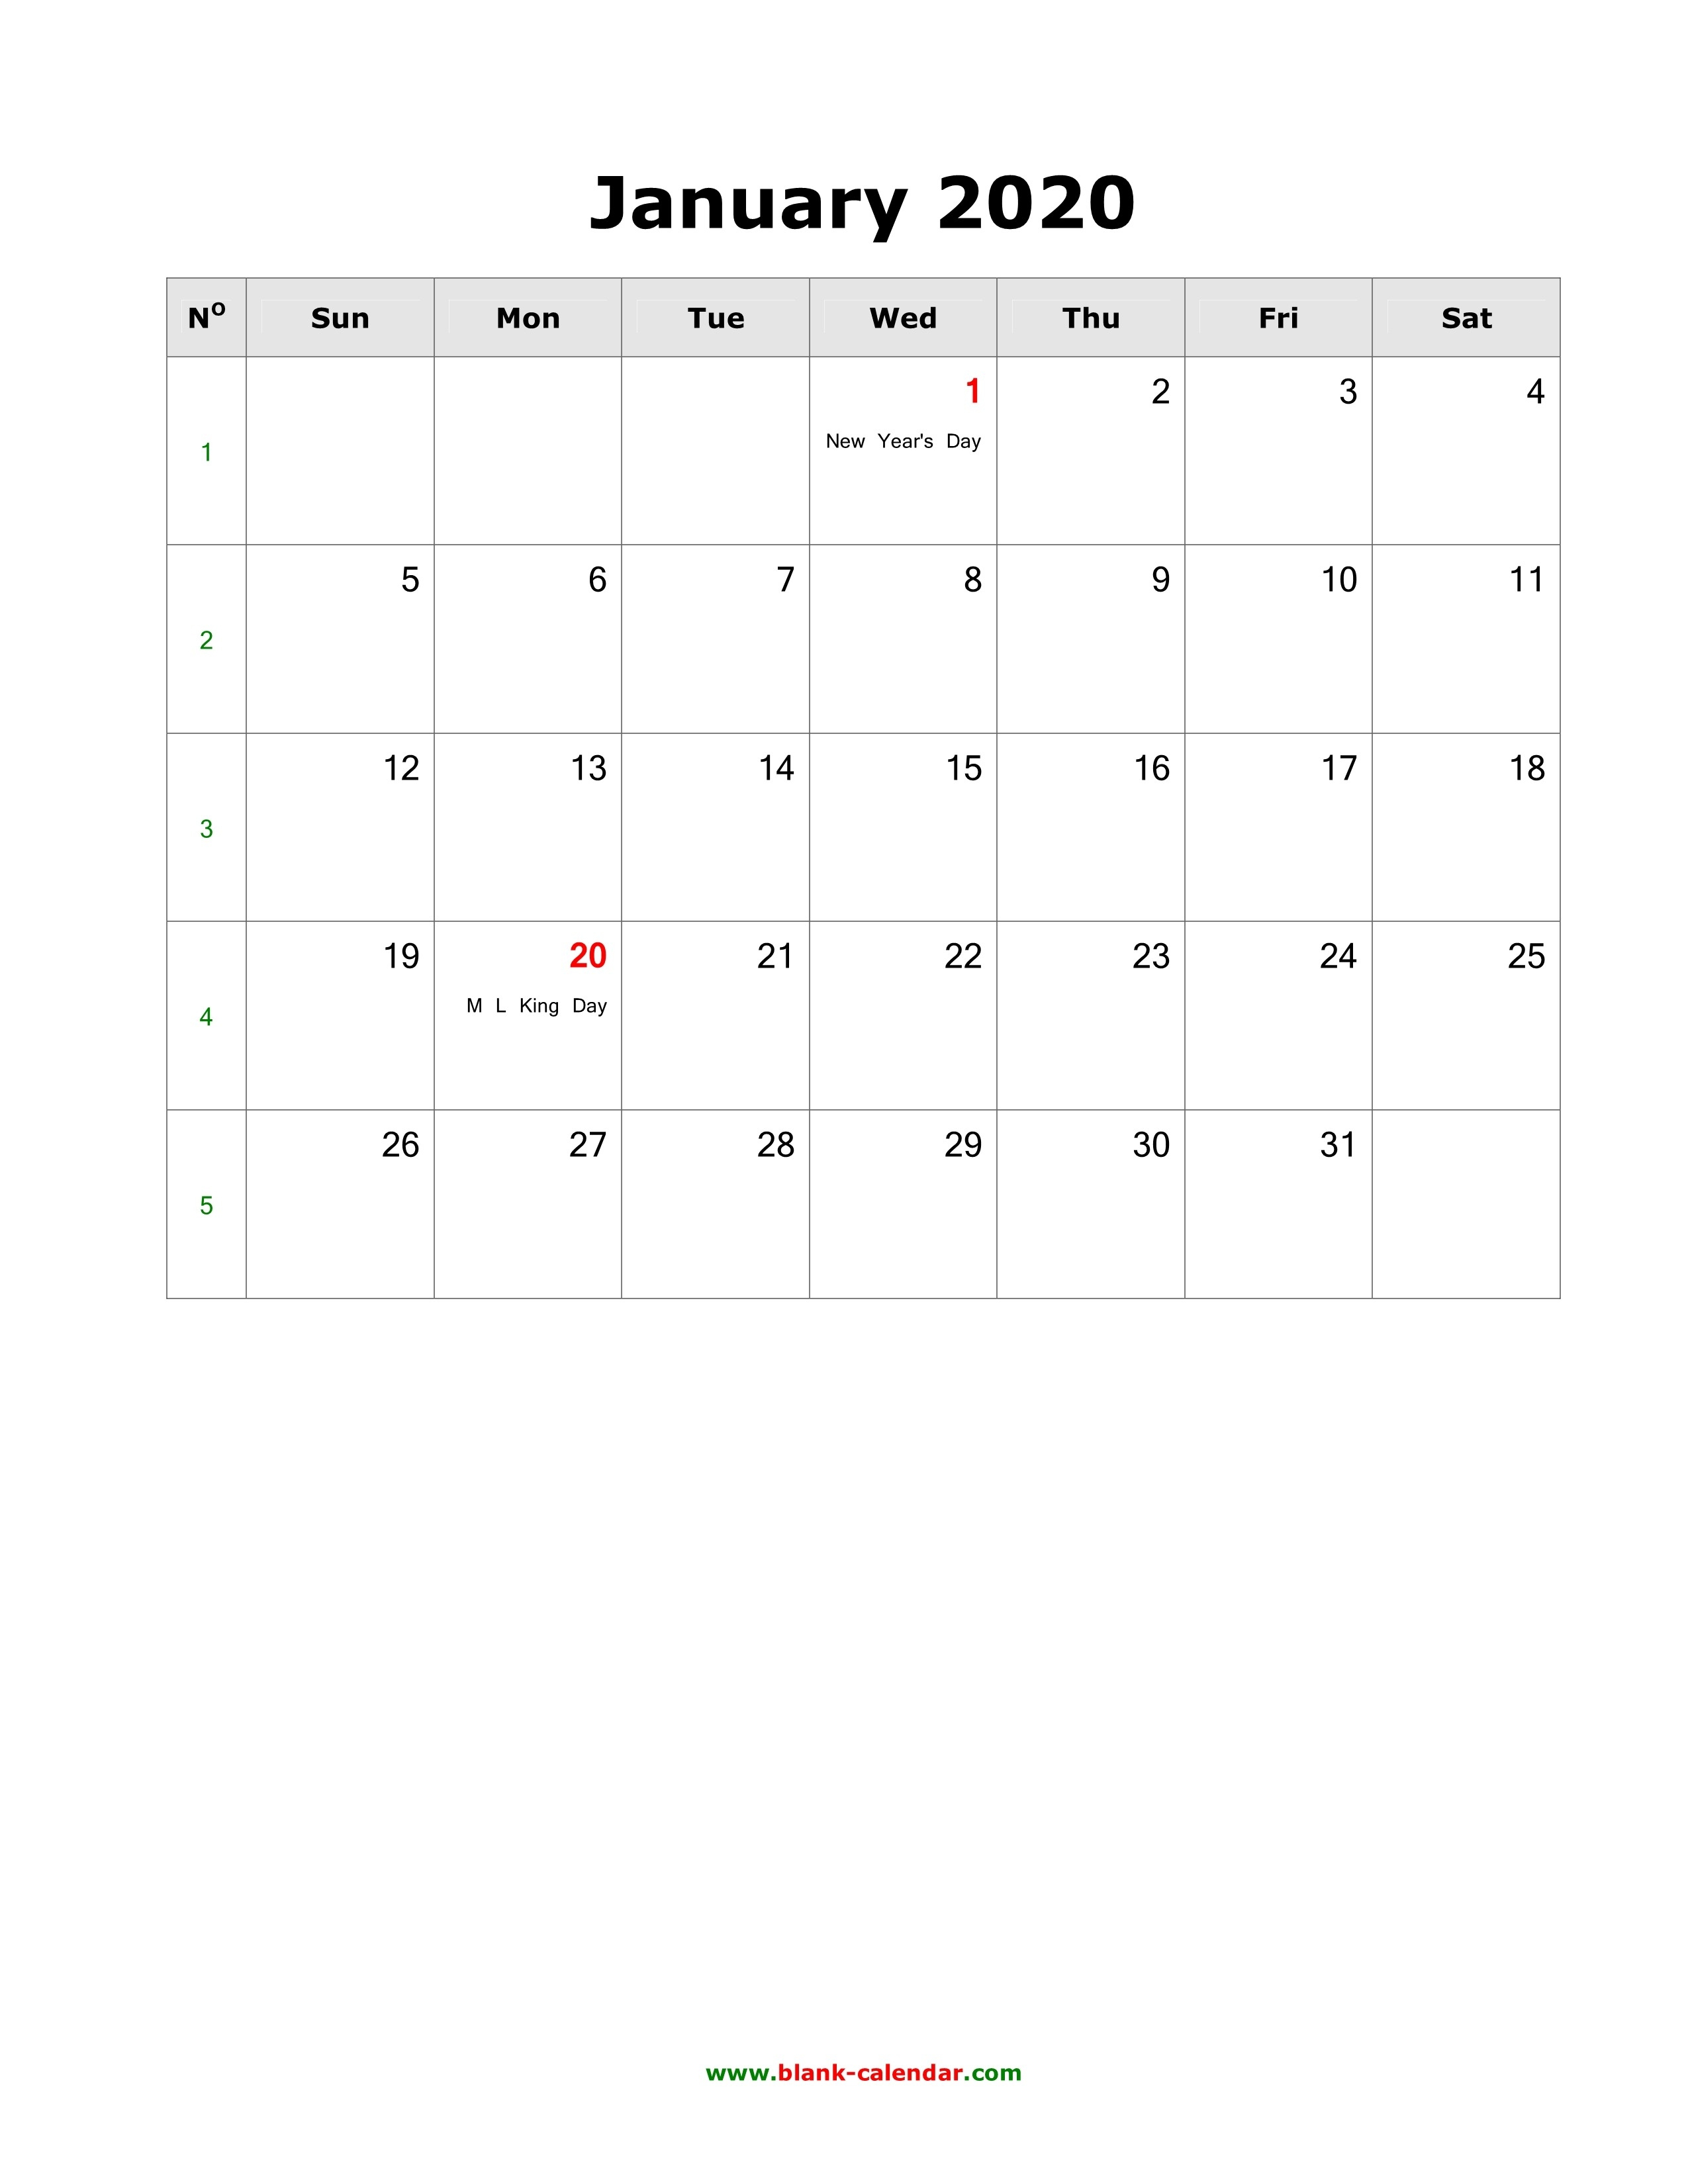 Download Blank Calendar 2020 With Us Holidays (12 Pages, One-Blank Calenday Monyh Pages